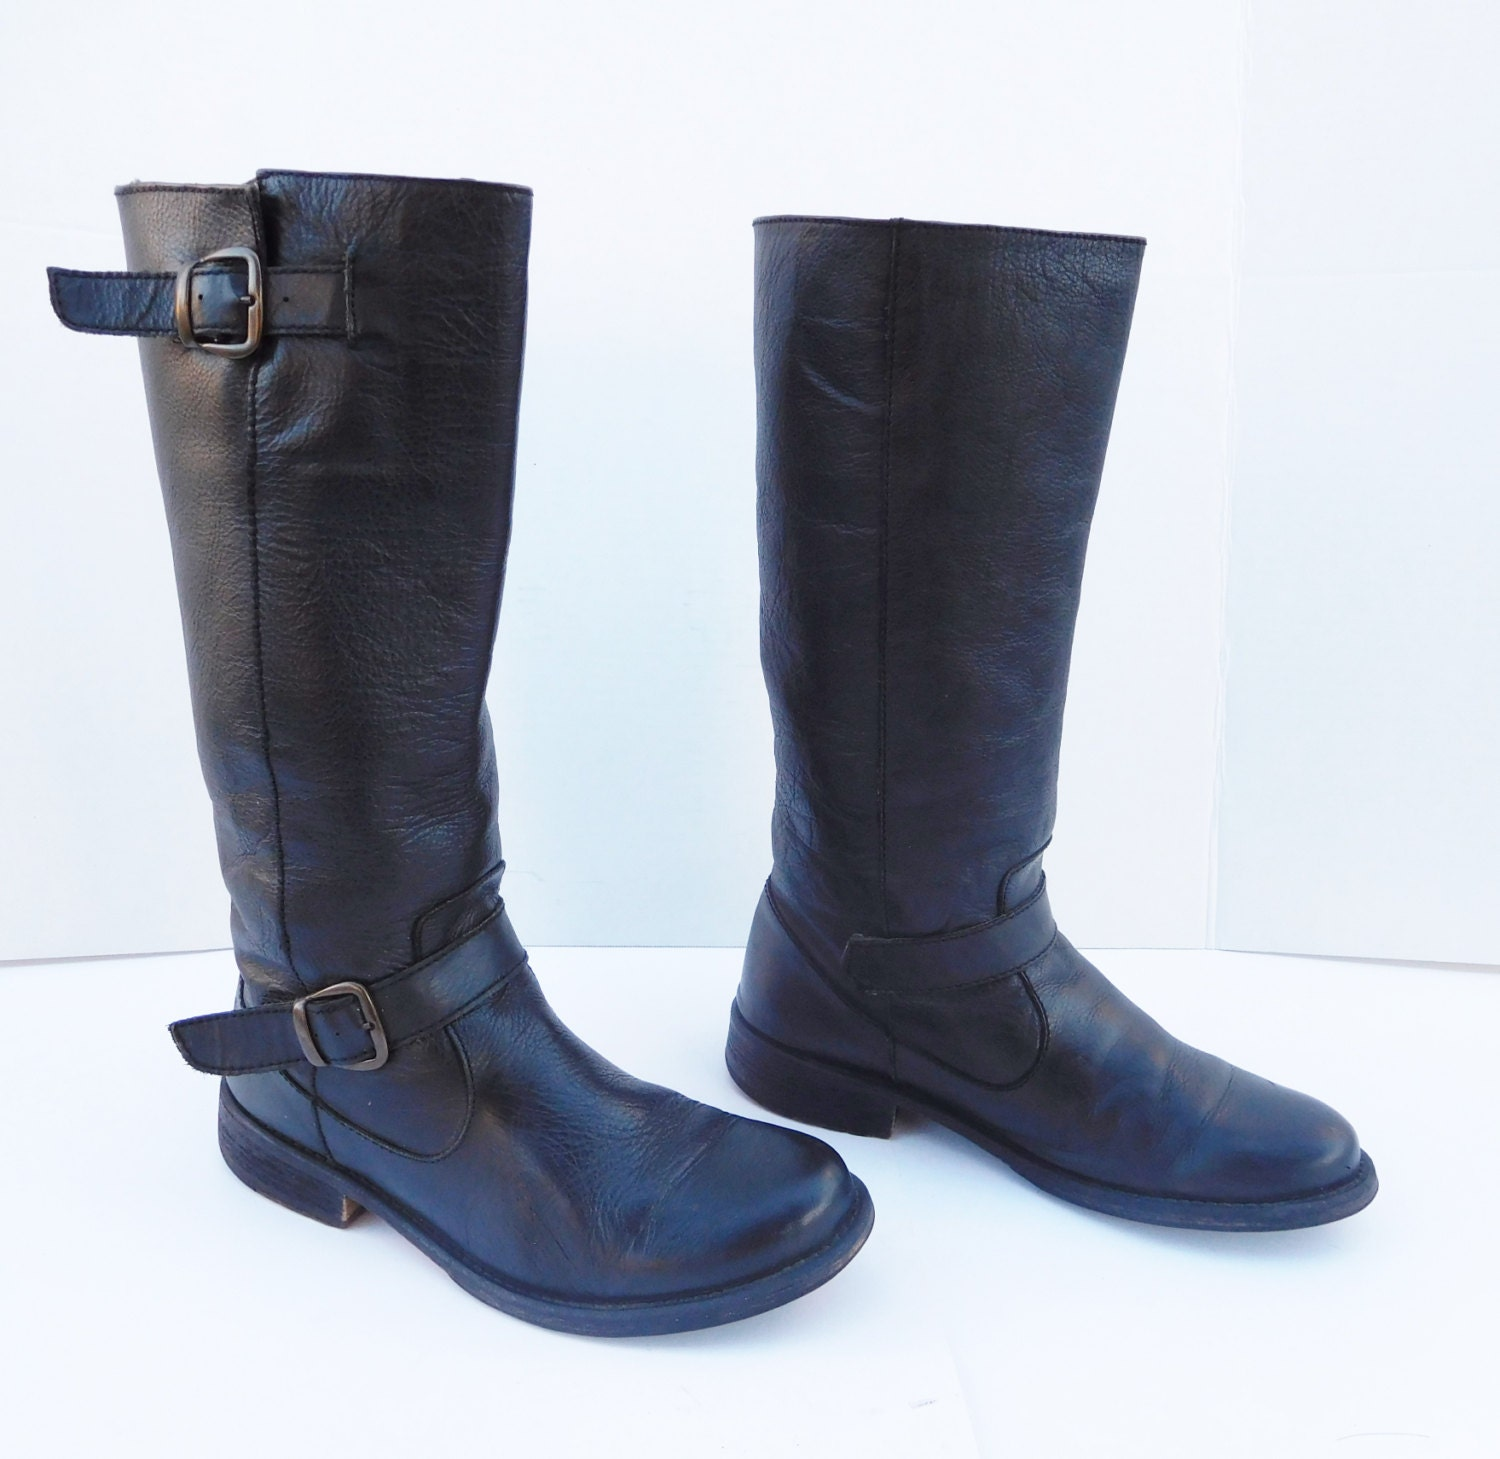 Wwii Double Buckle Boots Il Fullxfull Ano